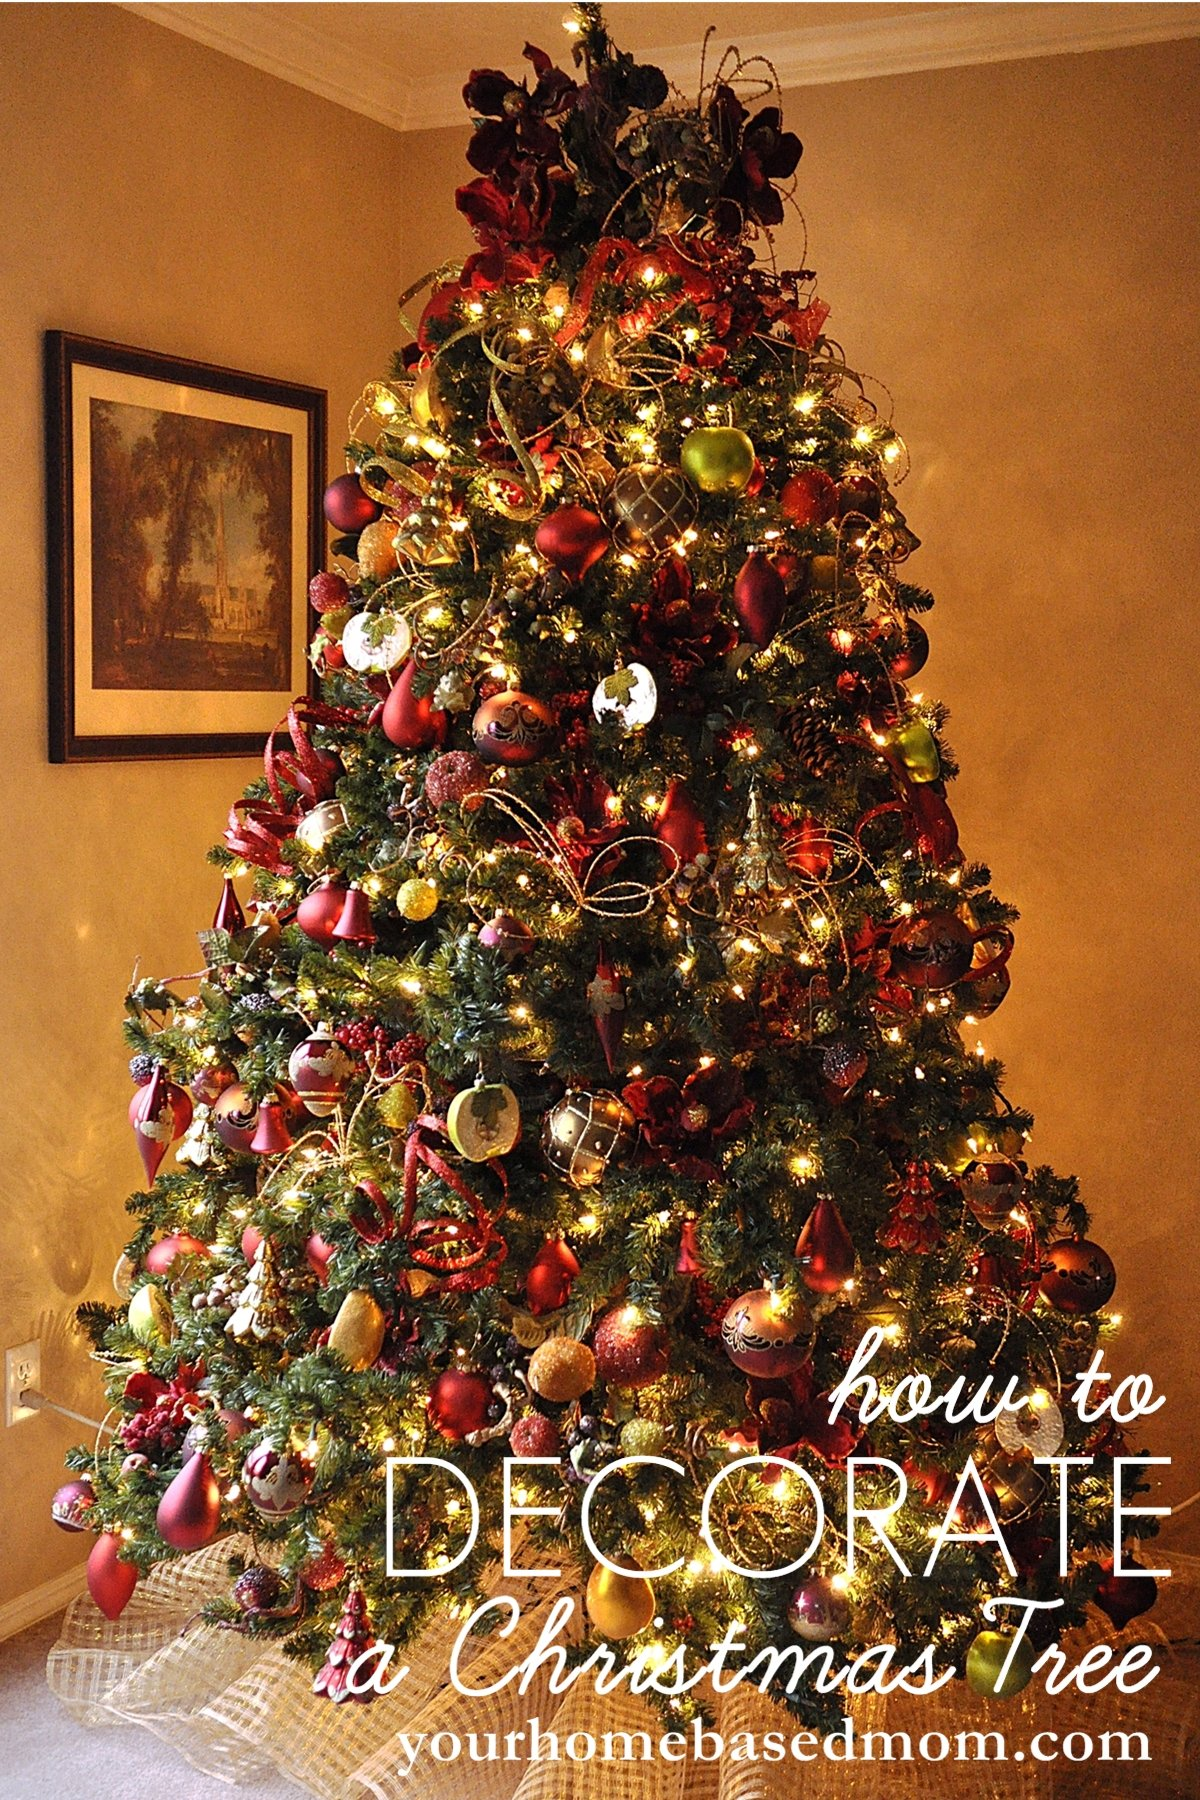 decorate a christmas tree - Ways To Decorate A Christmas Tree